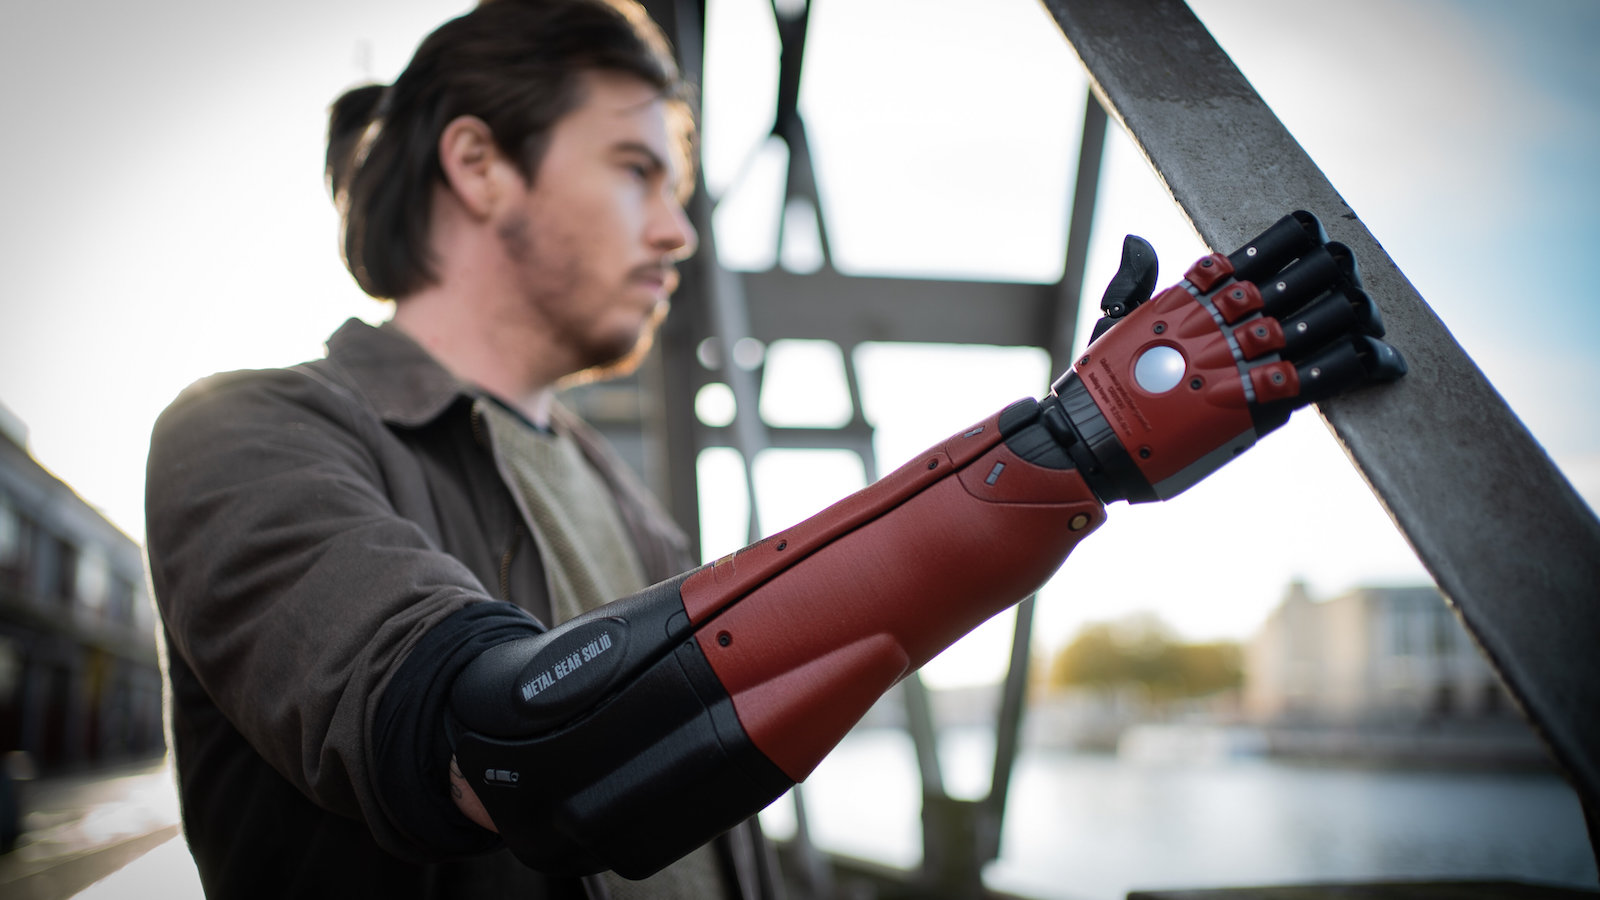 Open Bionics x Konami Venom Hero bionic arm is designed for below-elbow amputees